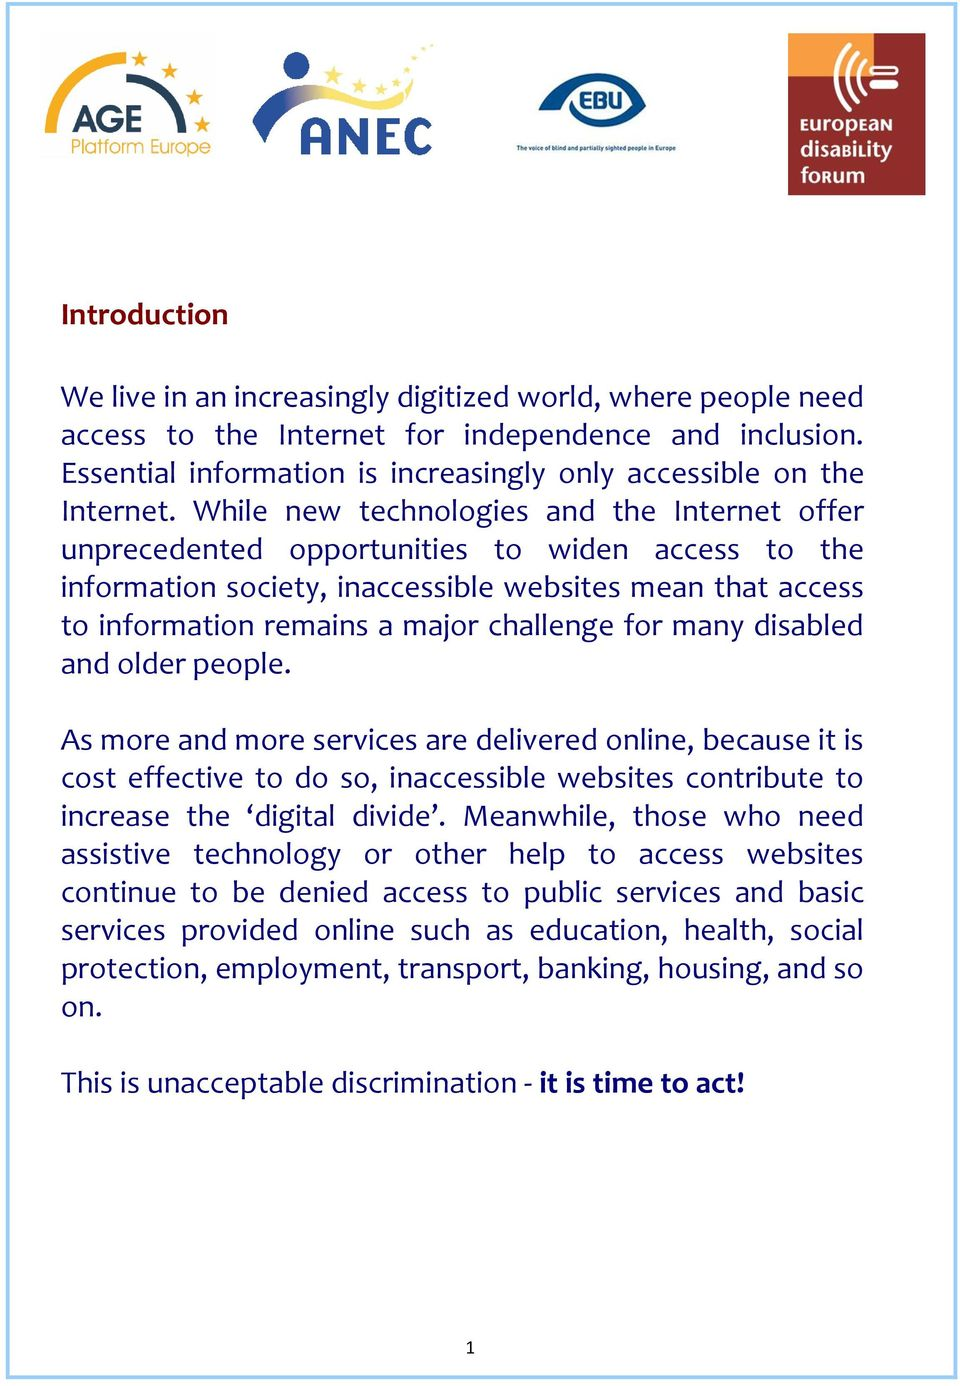 for many disabled and older people. As more and more services are delivered online, because it is cost effective to do so, inaccessible websites contribute to increase the digital divide.